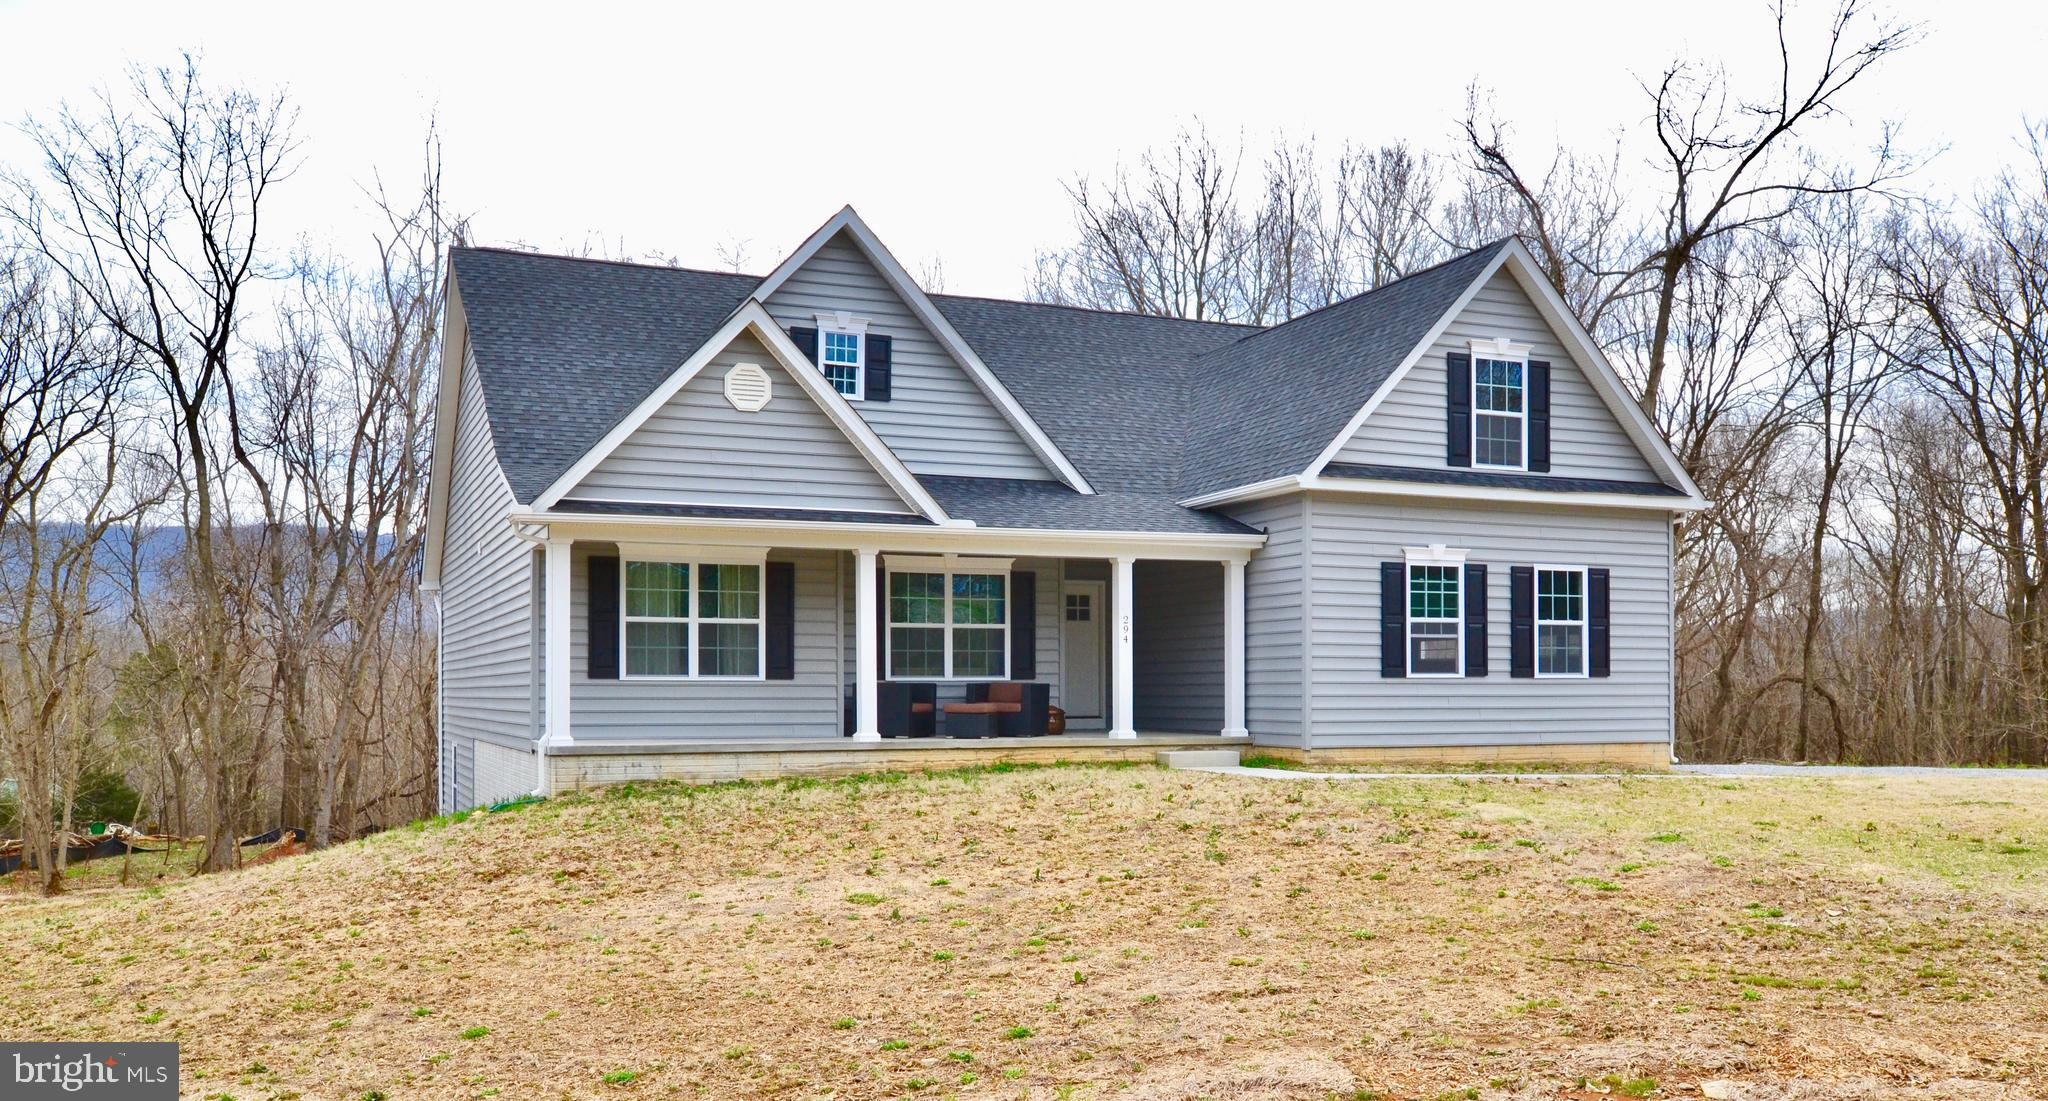 294 FRISKY COURT, HARPERS FERRY, WV 25425